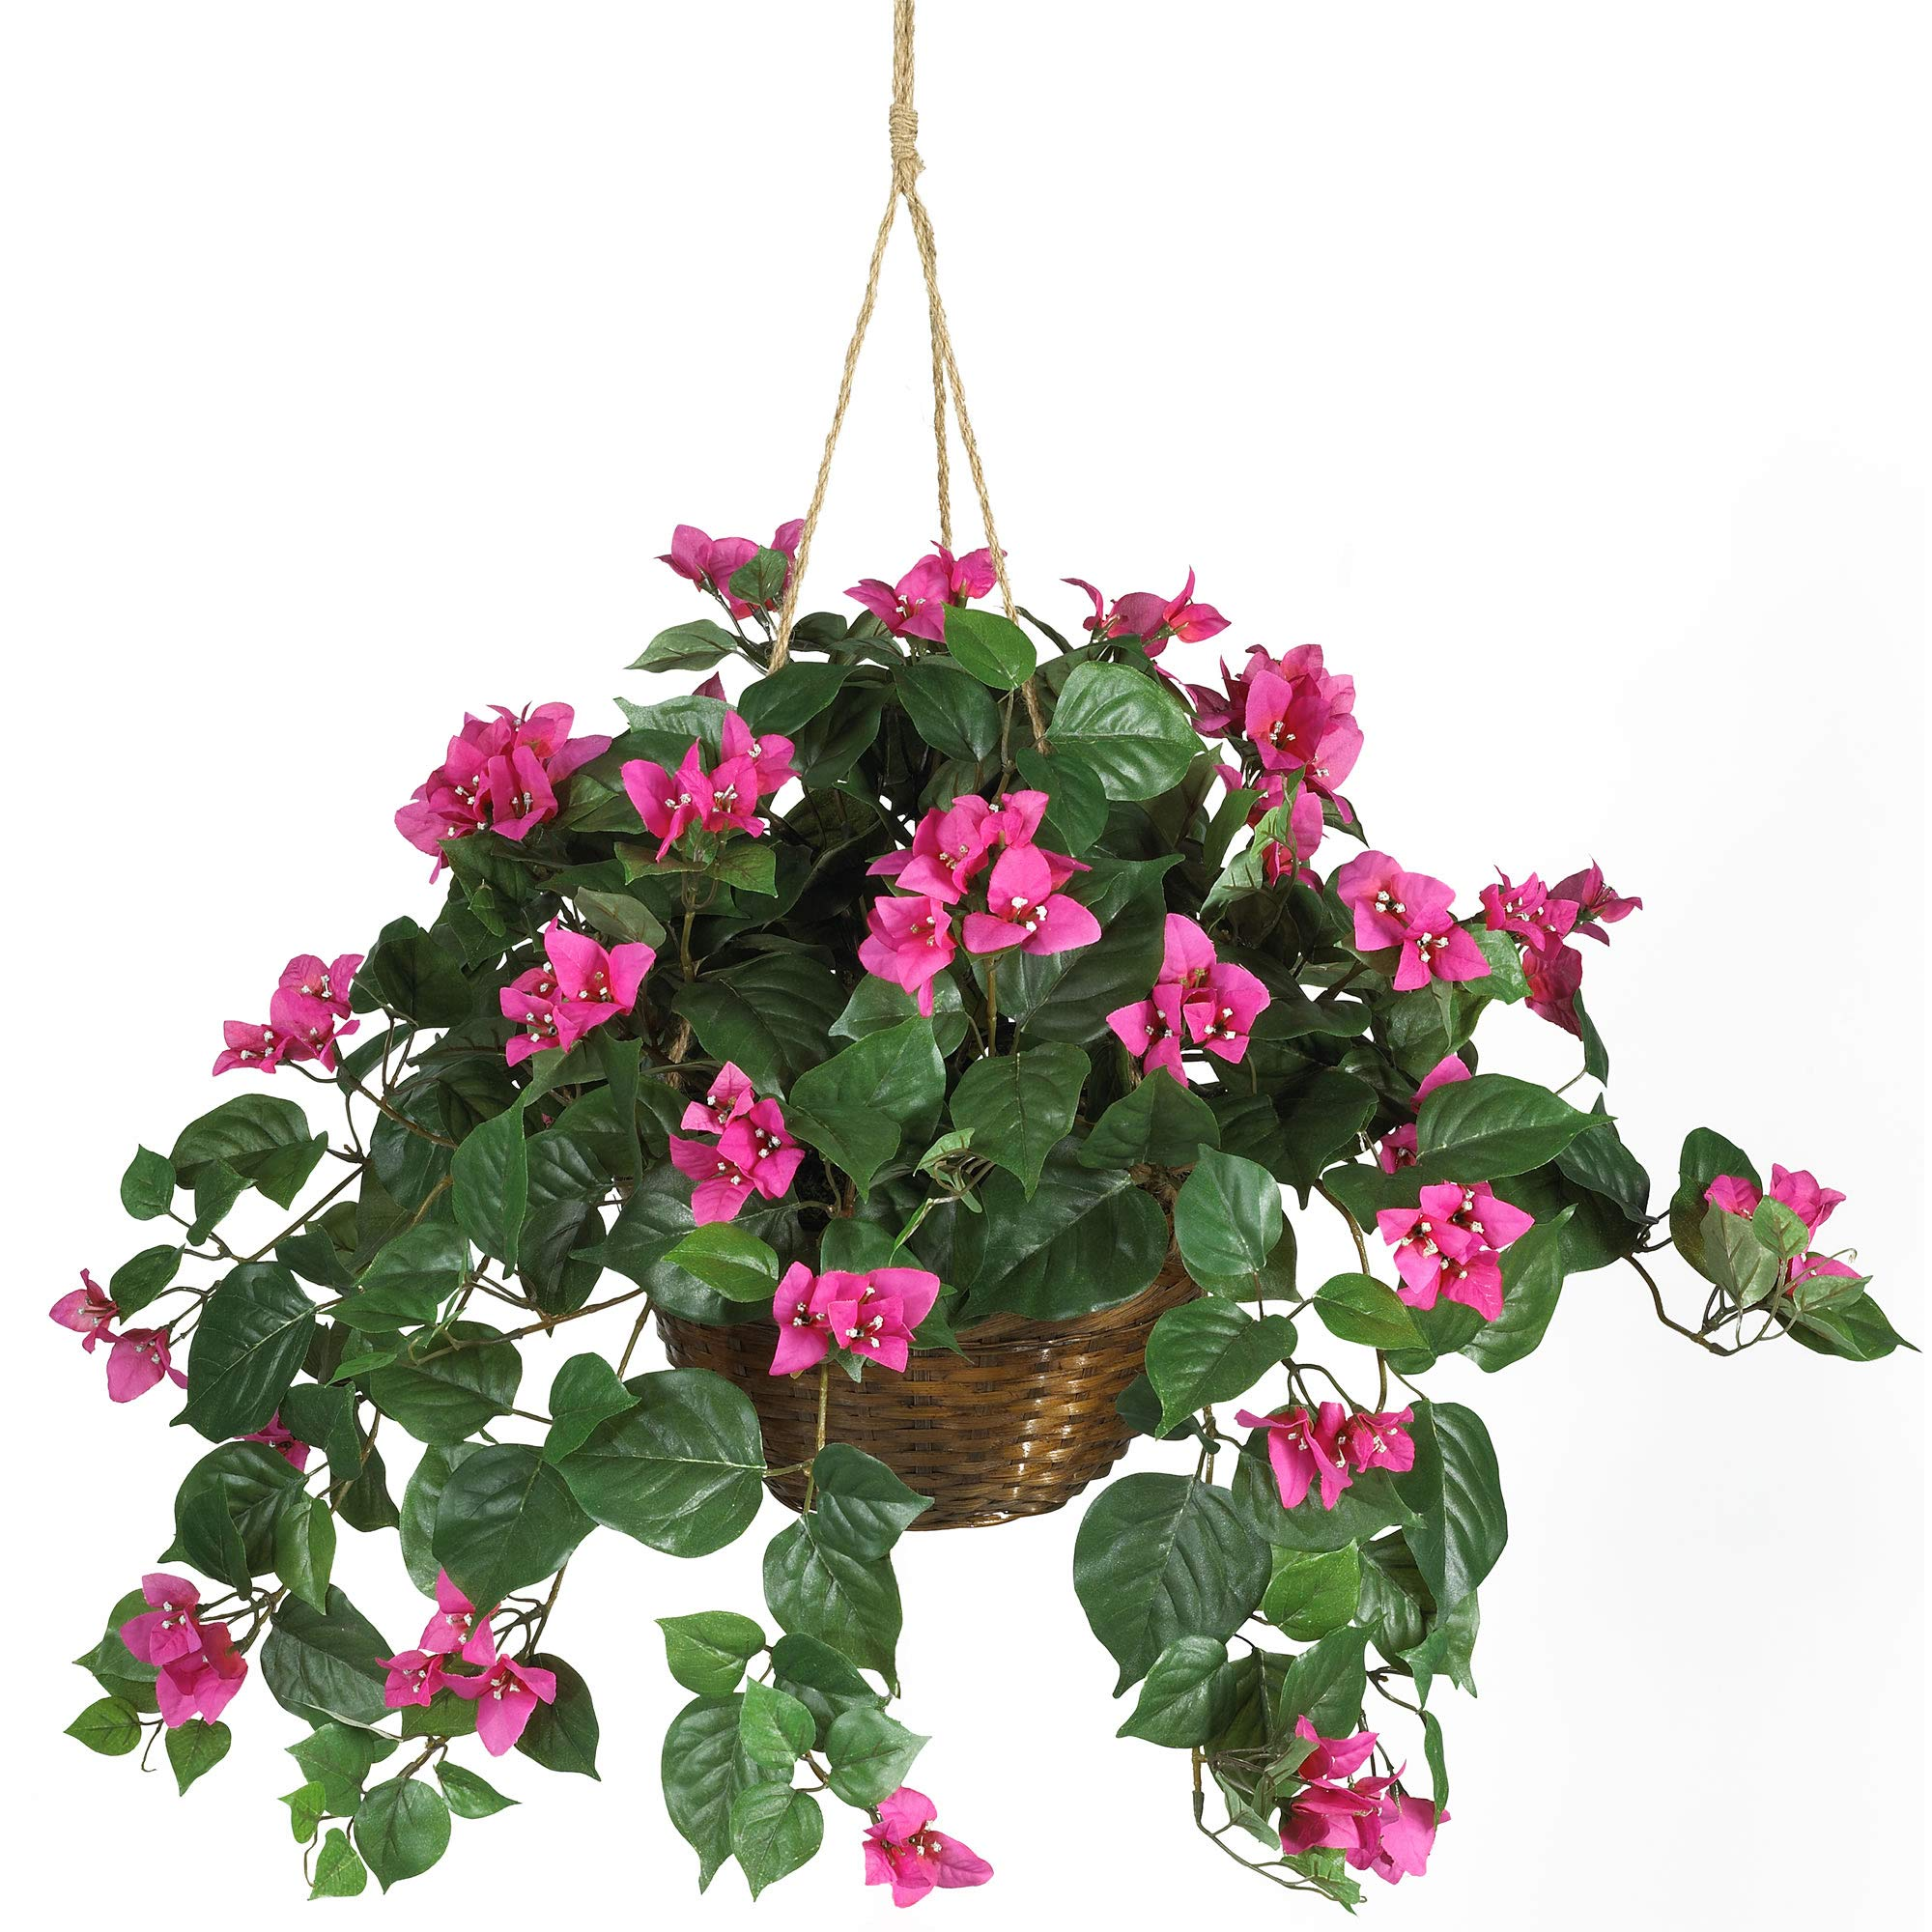 Nearly Natural 6608 24in. Bougainvillea Hanging Basket Silk Plant by Nearly Natural